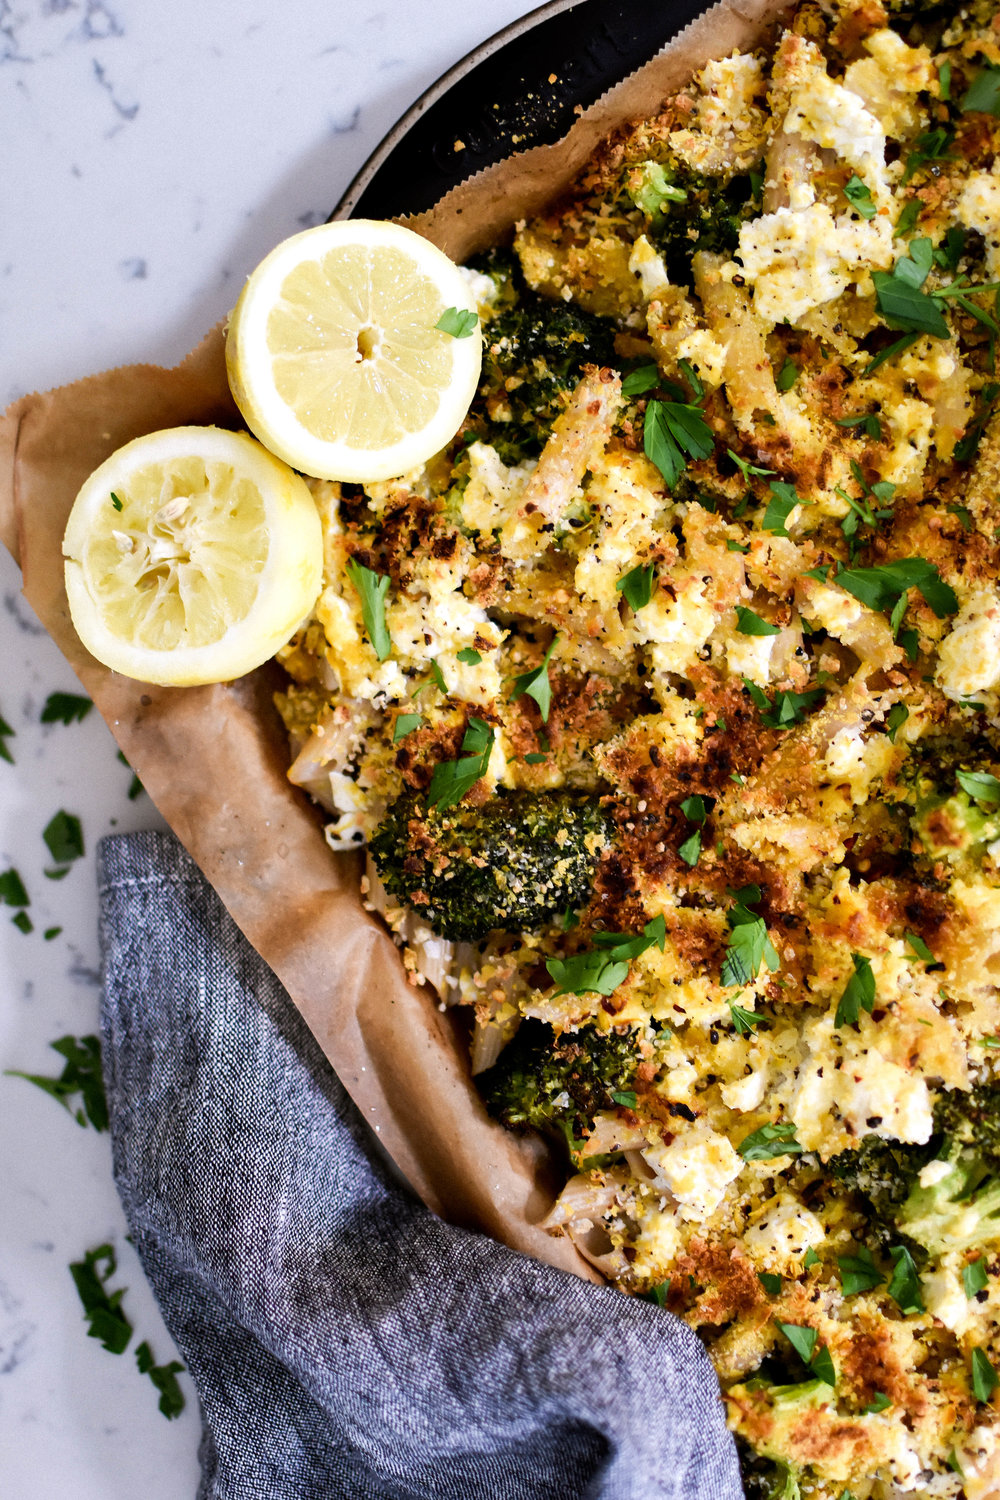 LEMON_BROCCOLI_TRAY_BAKE_PASTA-13.jpg